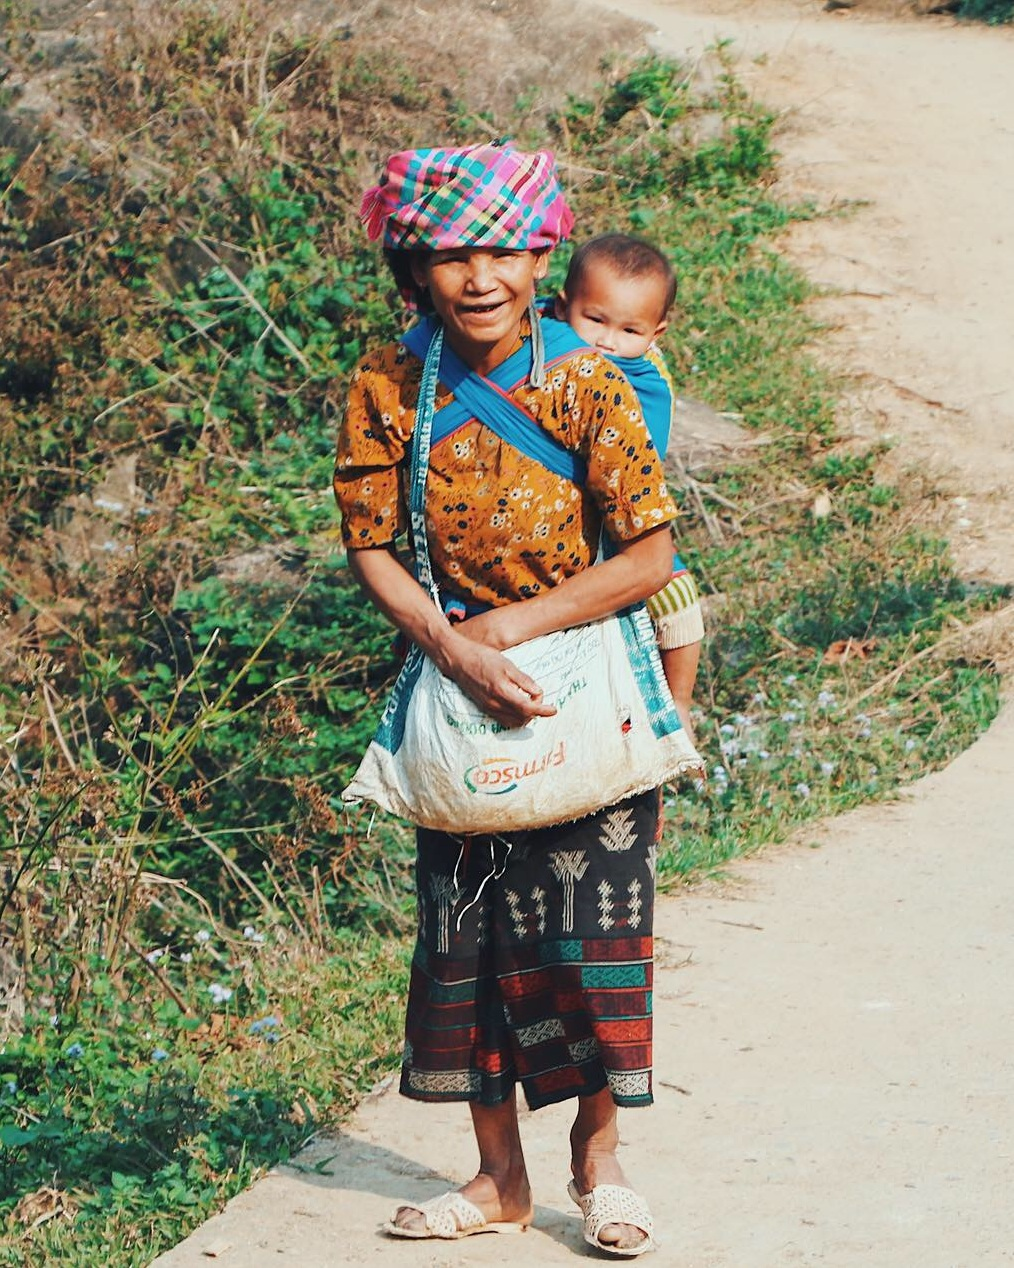 This is one of my all-time favorite photos. This woman and her baby were walking up from the river as we made our way down and she gave me one of the most authentic smiles I have ever seen.